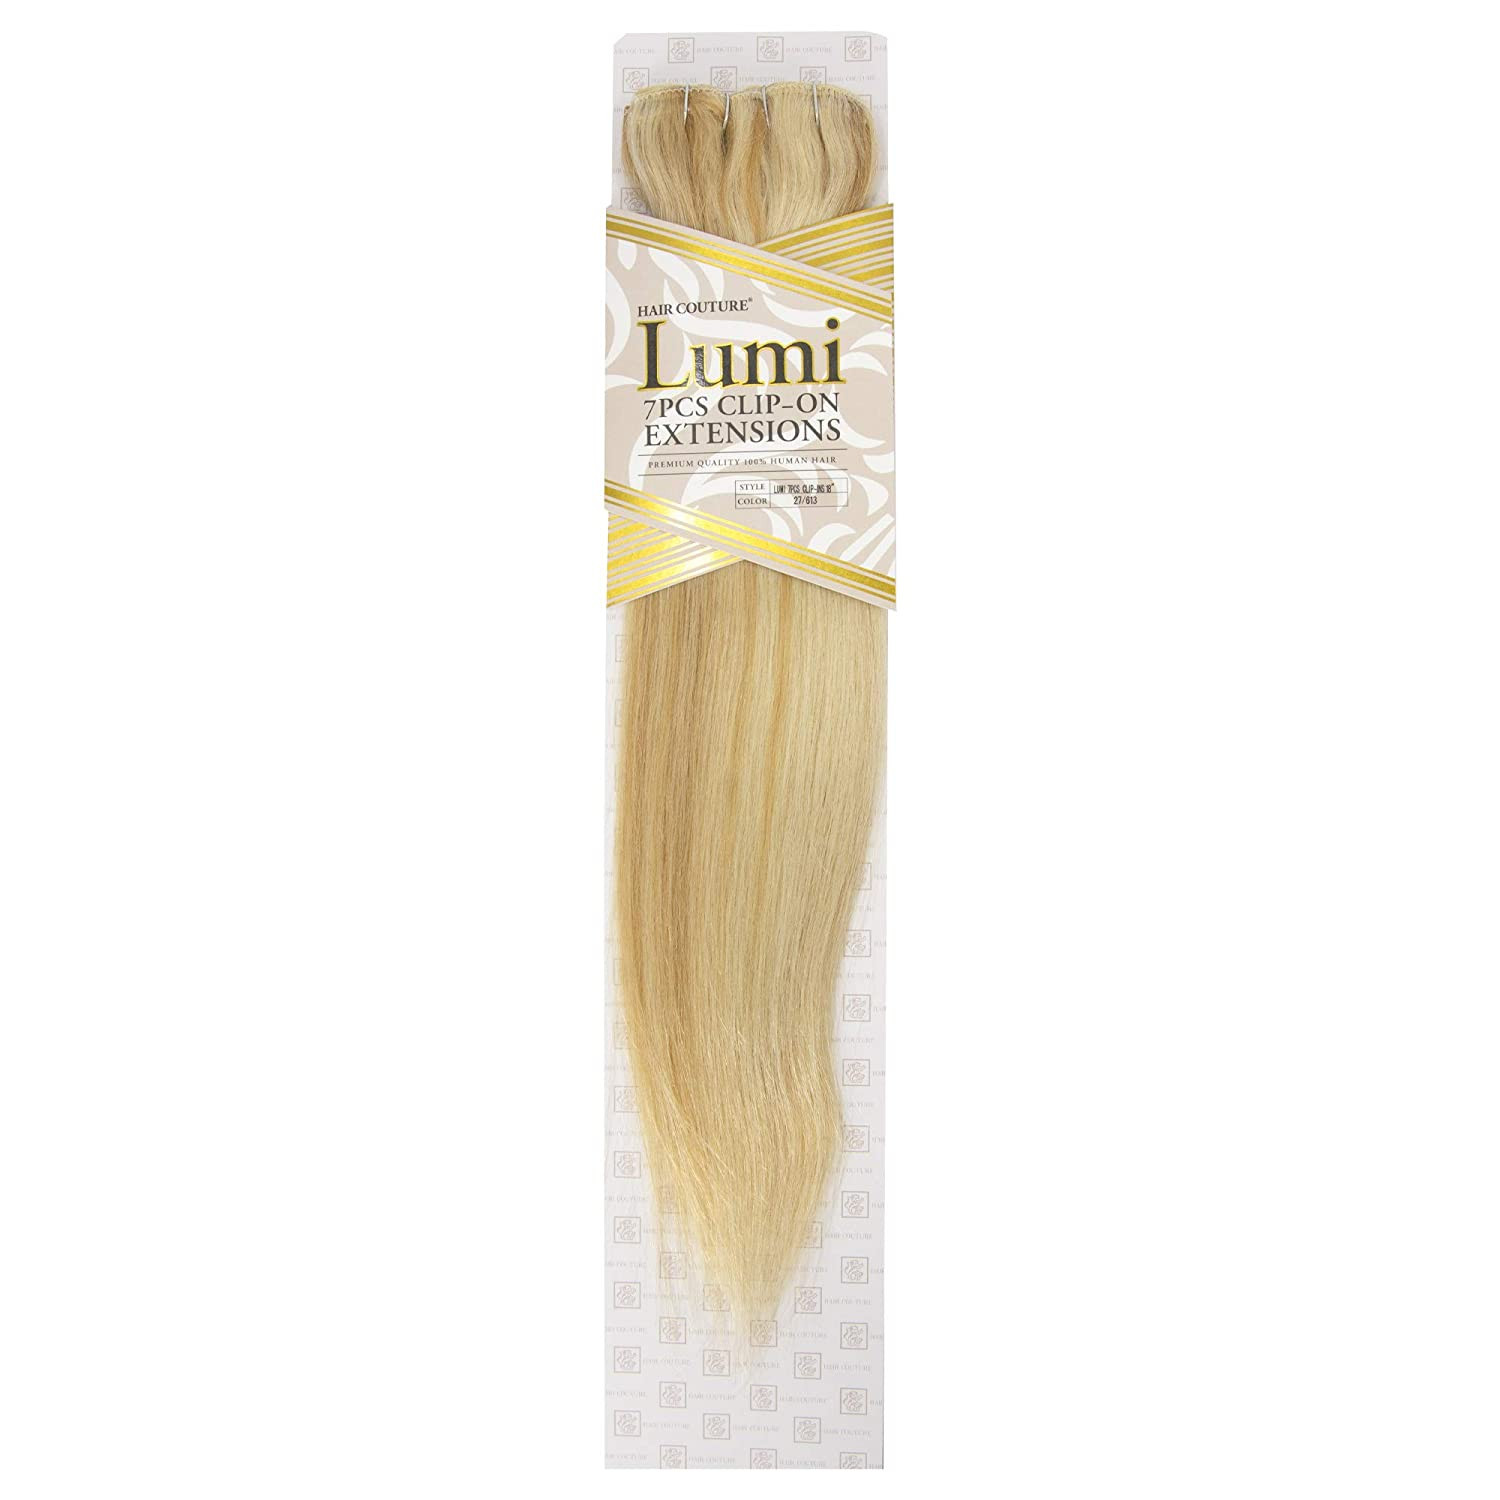 HAIR COUTURE Clip-In Extensions Lumi 7 HE 2 18